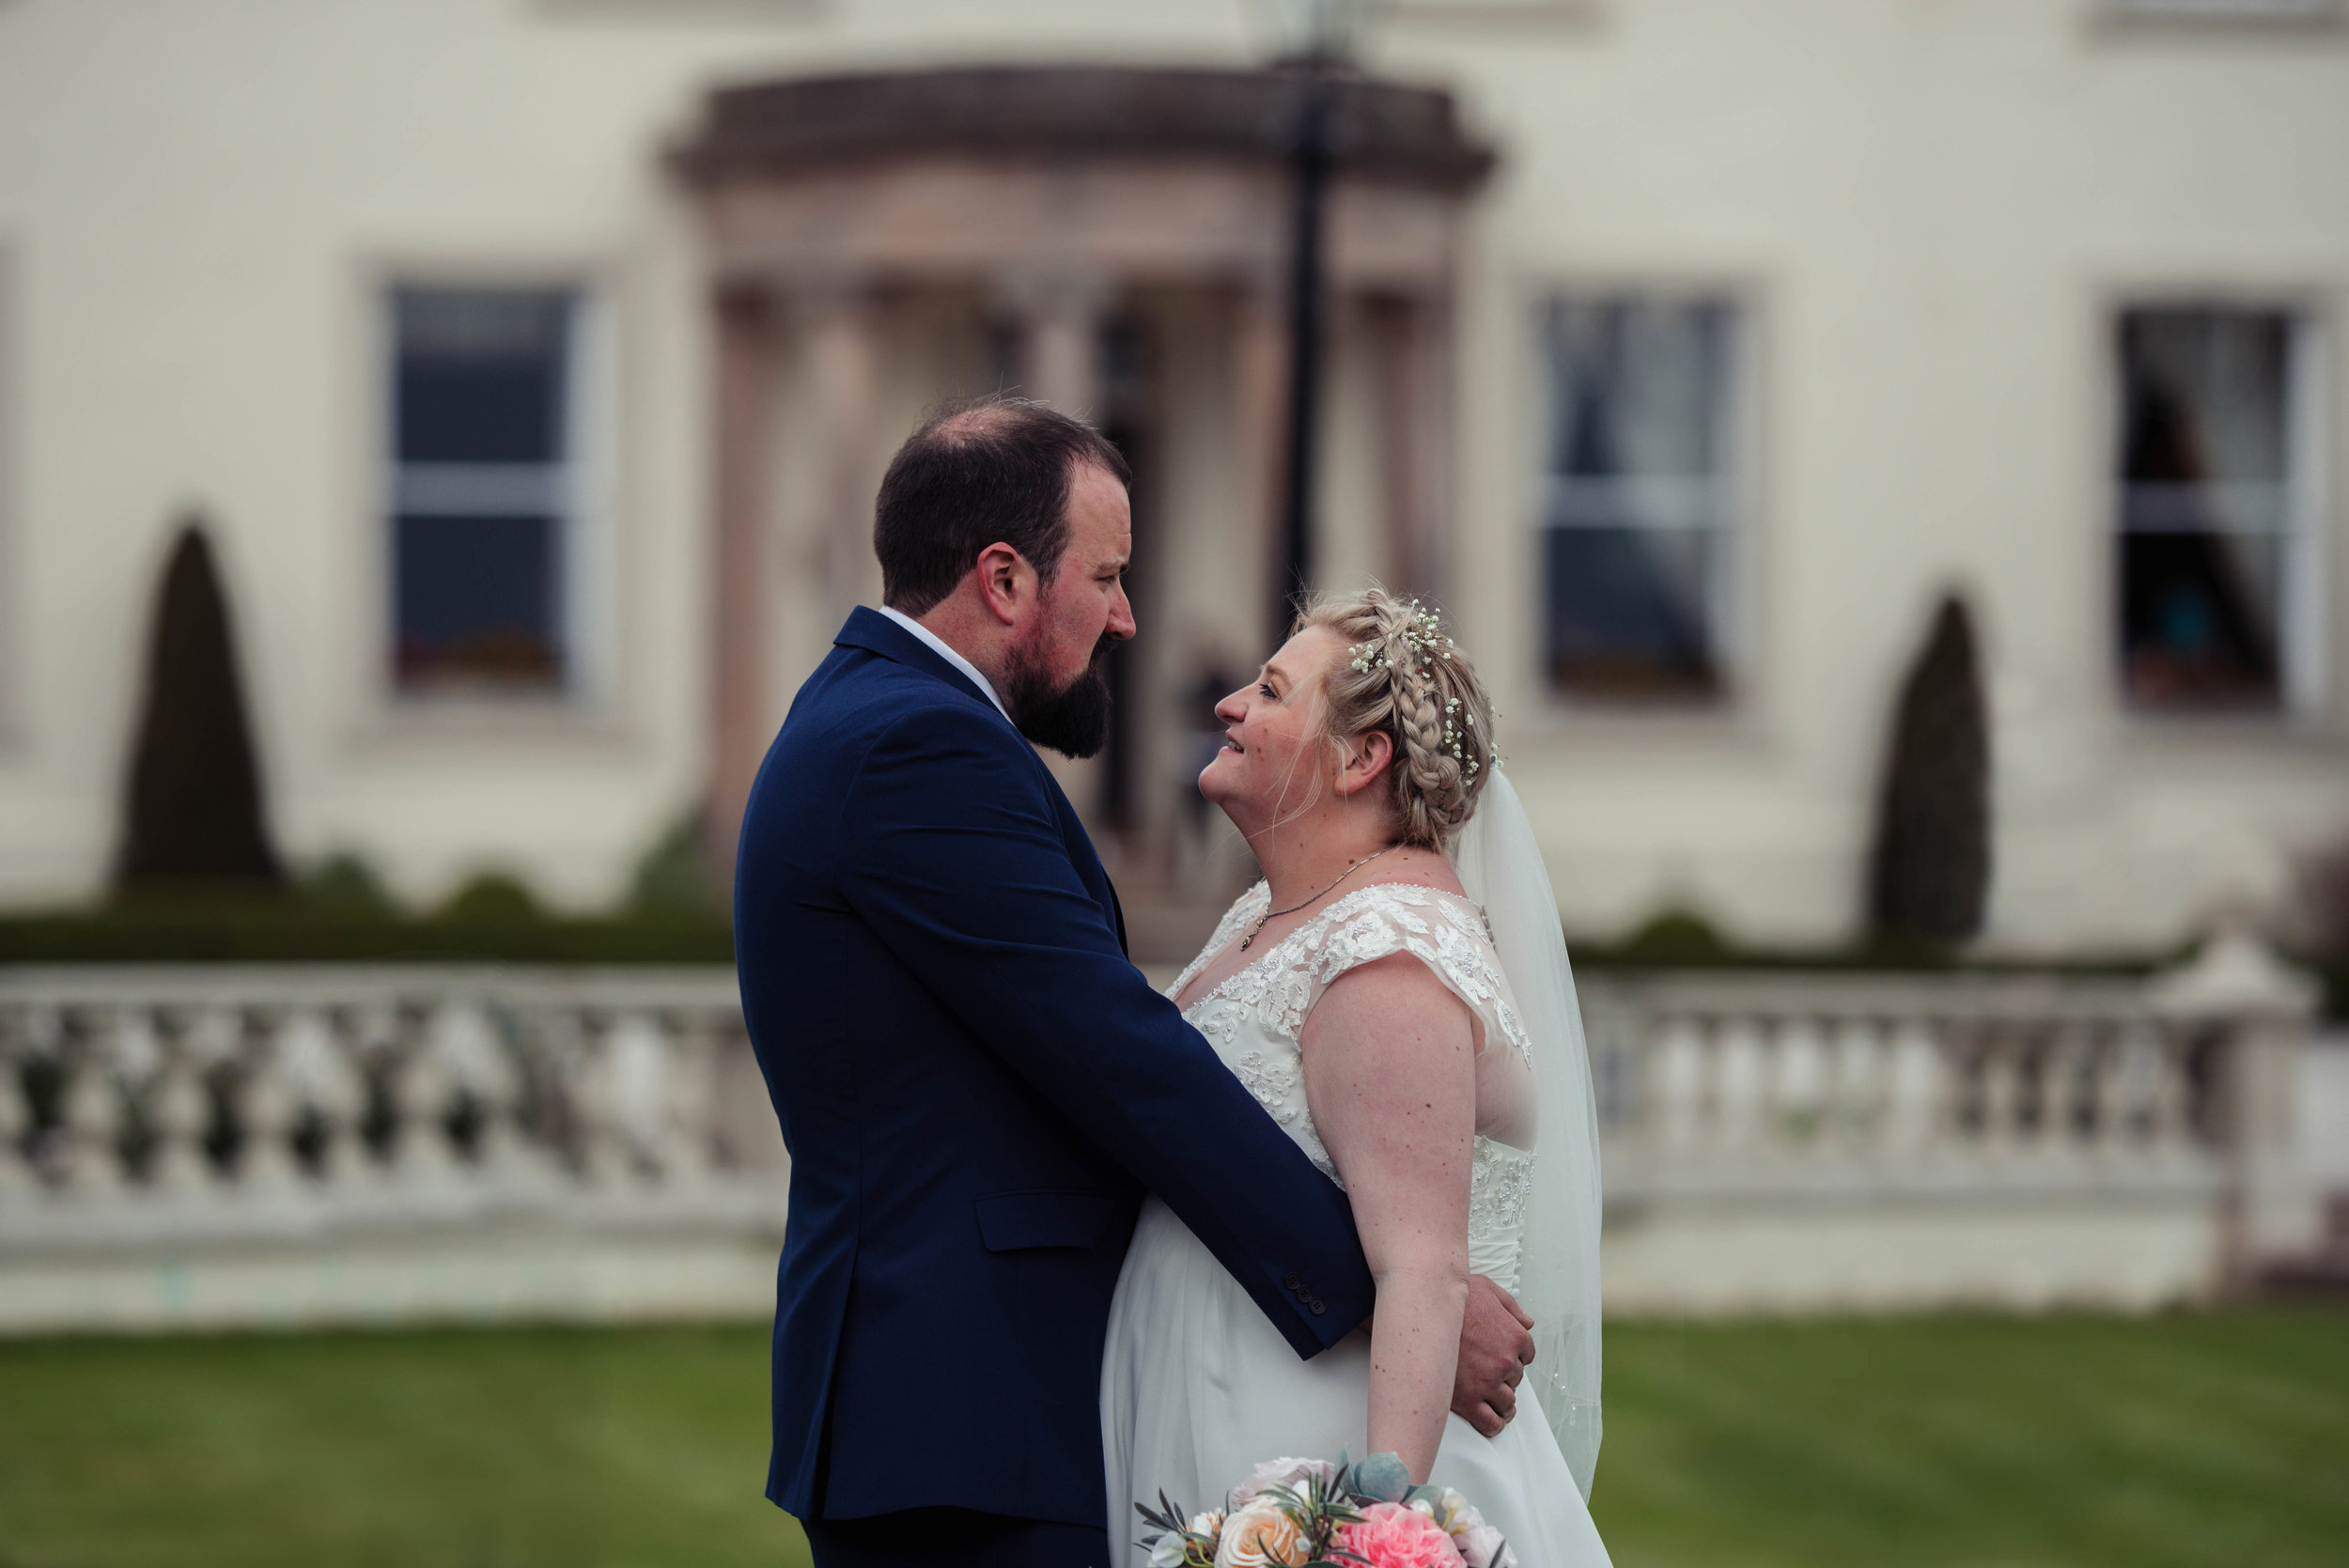 The bride and groom have a giggle during their wedding photography portraits